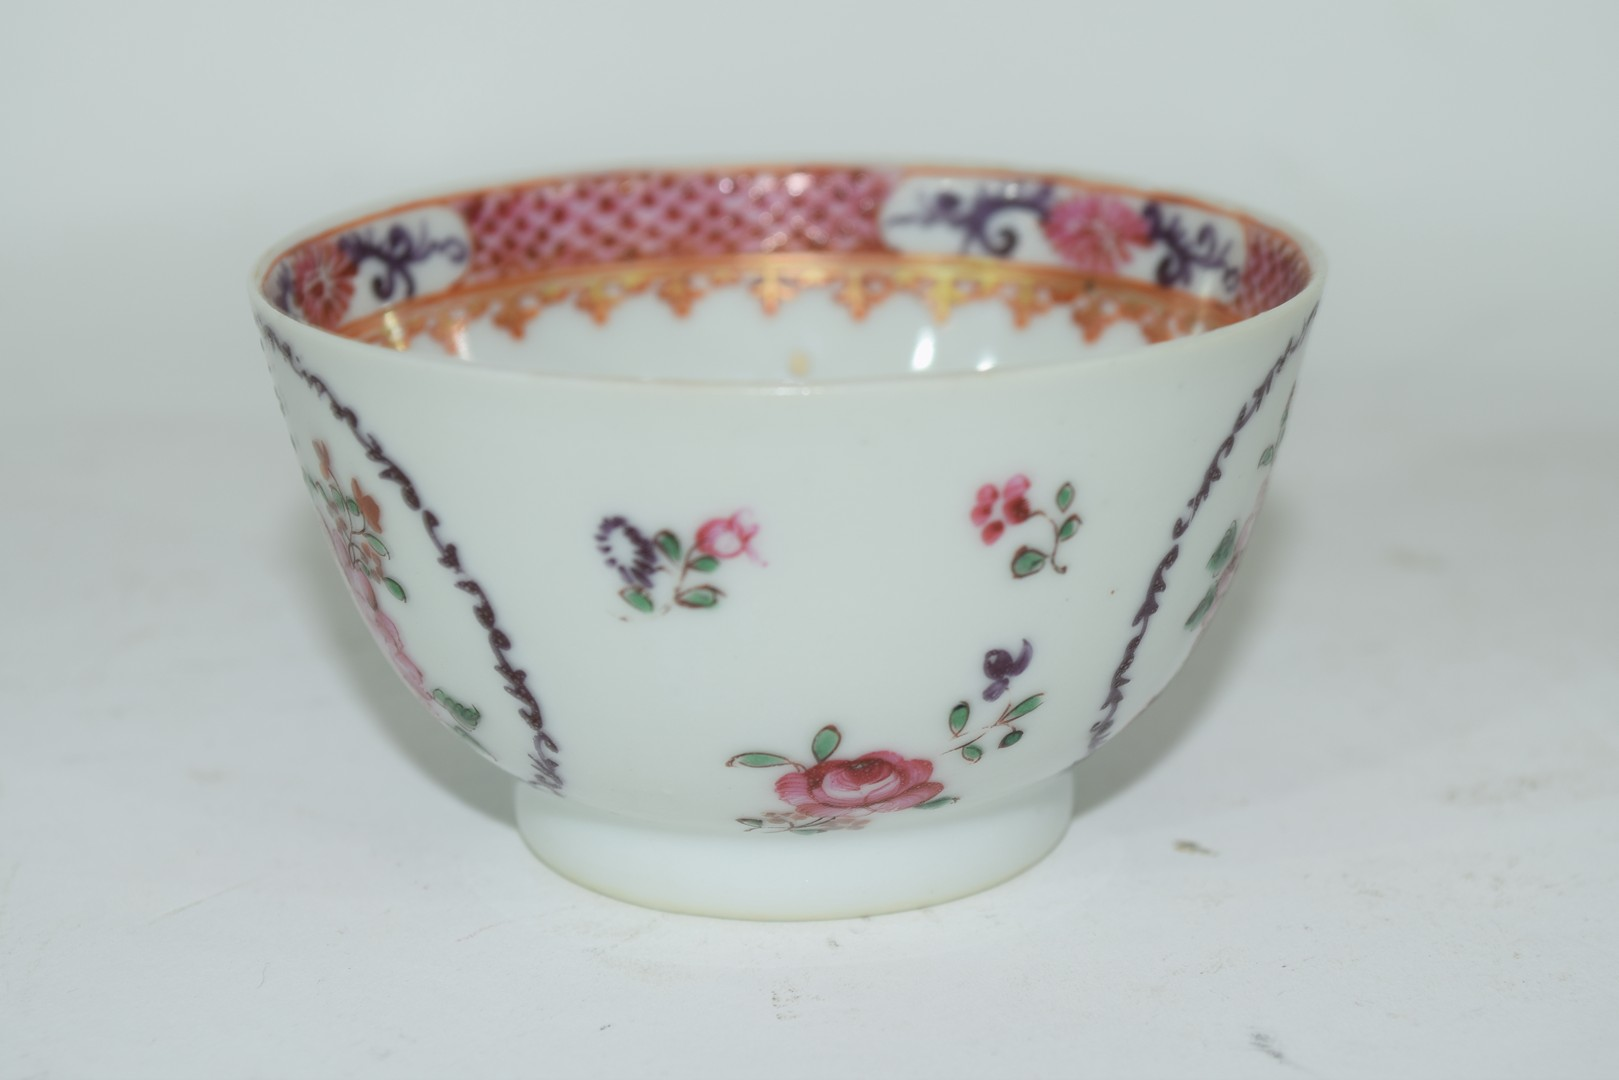 Continental porcelain cup and saucer decorated in Meissen style - Image 4 of 6